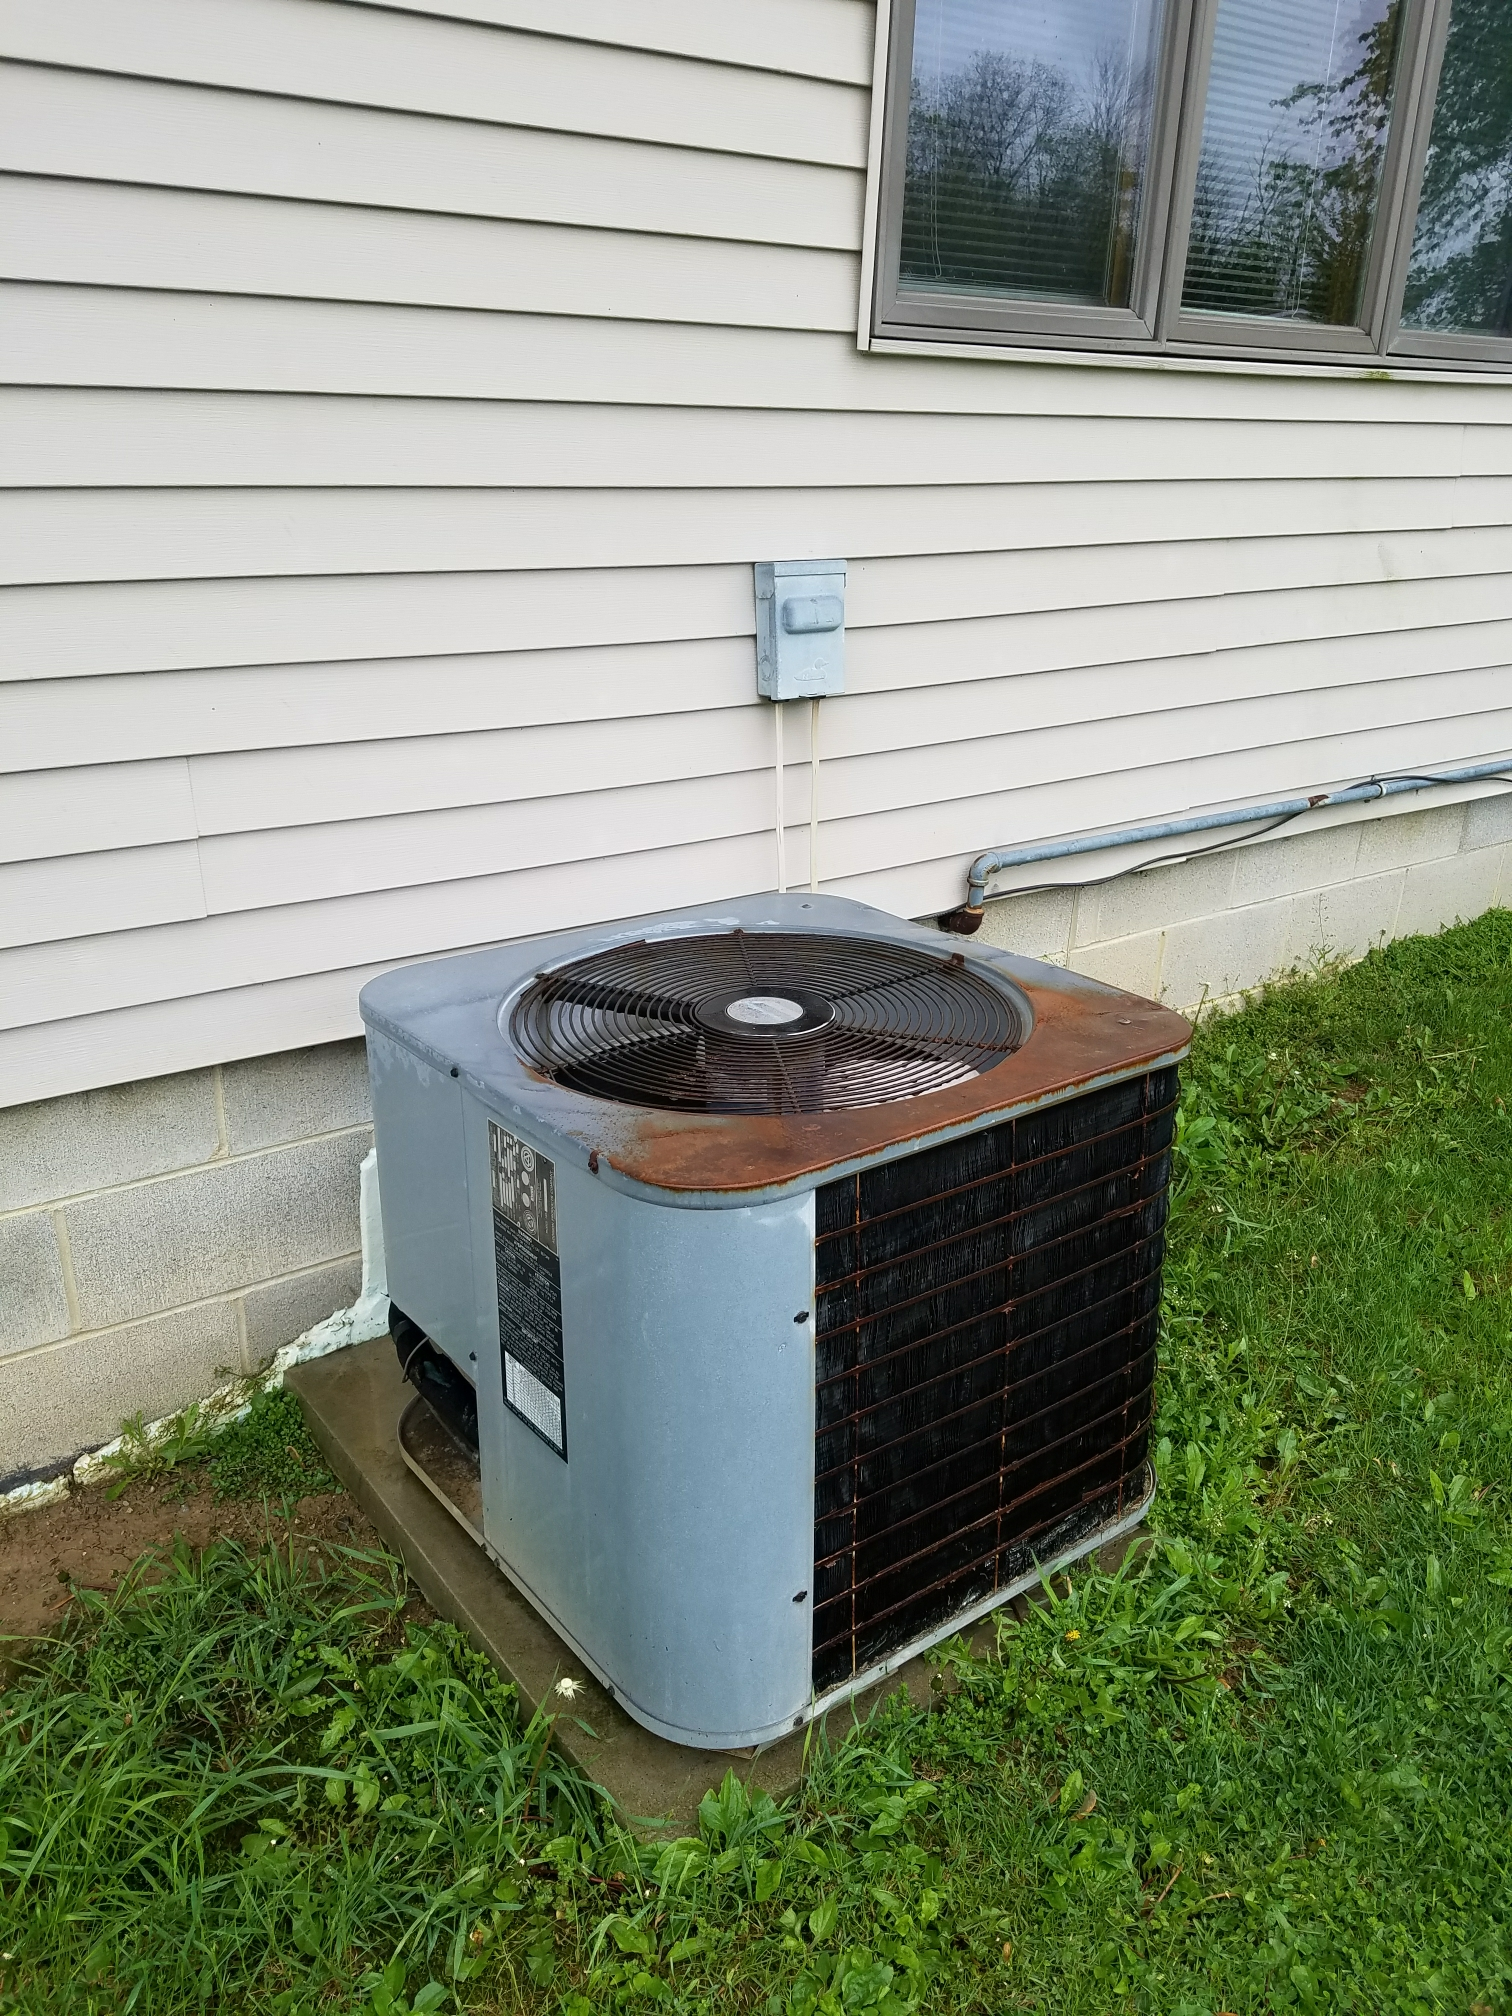 Wabash, IN - Replace Weather King air conditioner with new Bryant two stage air conditioner